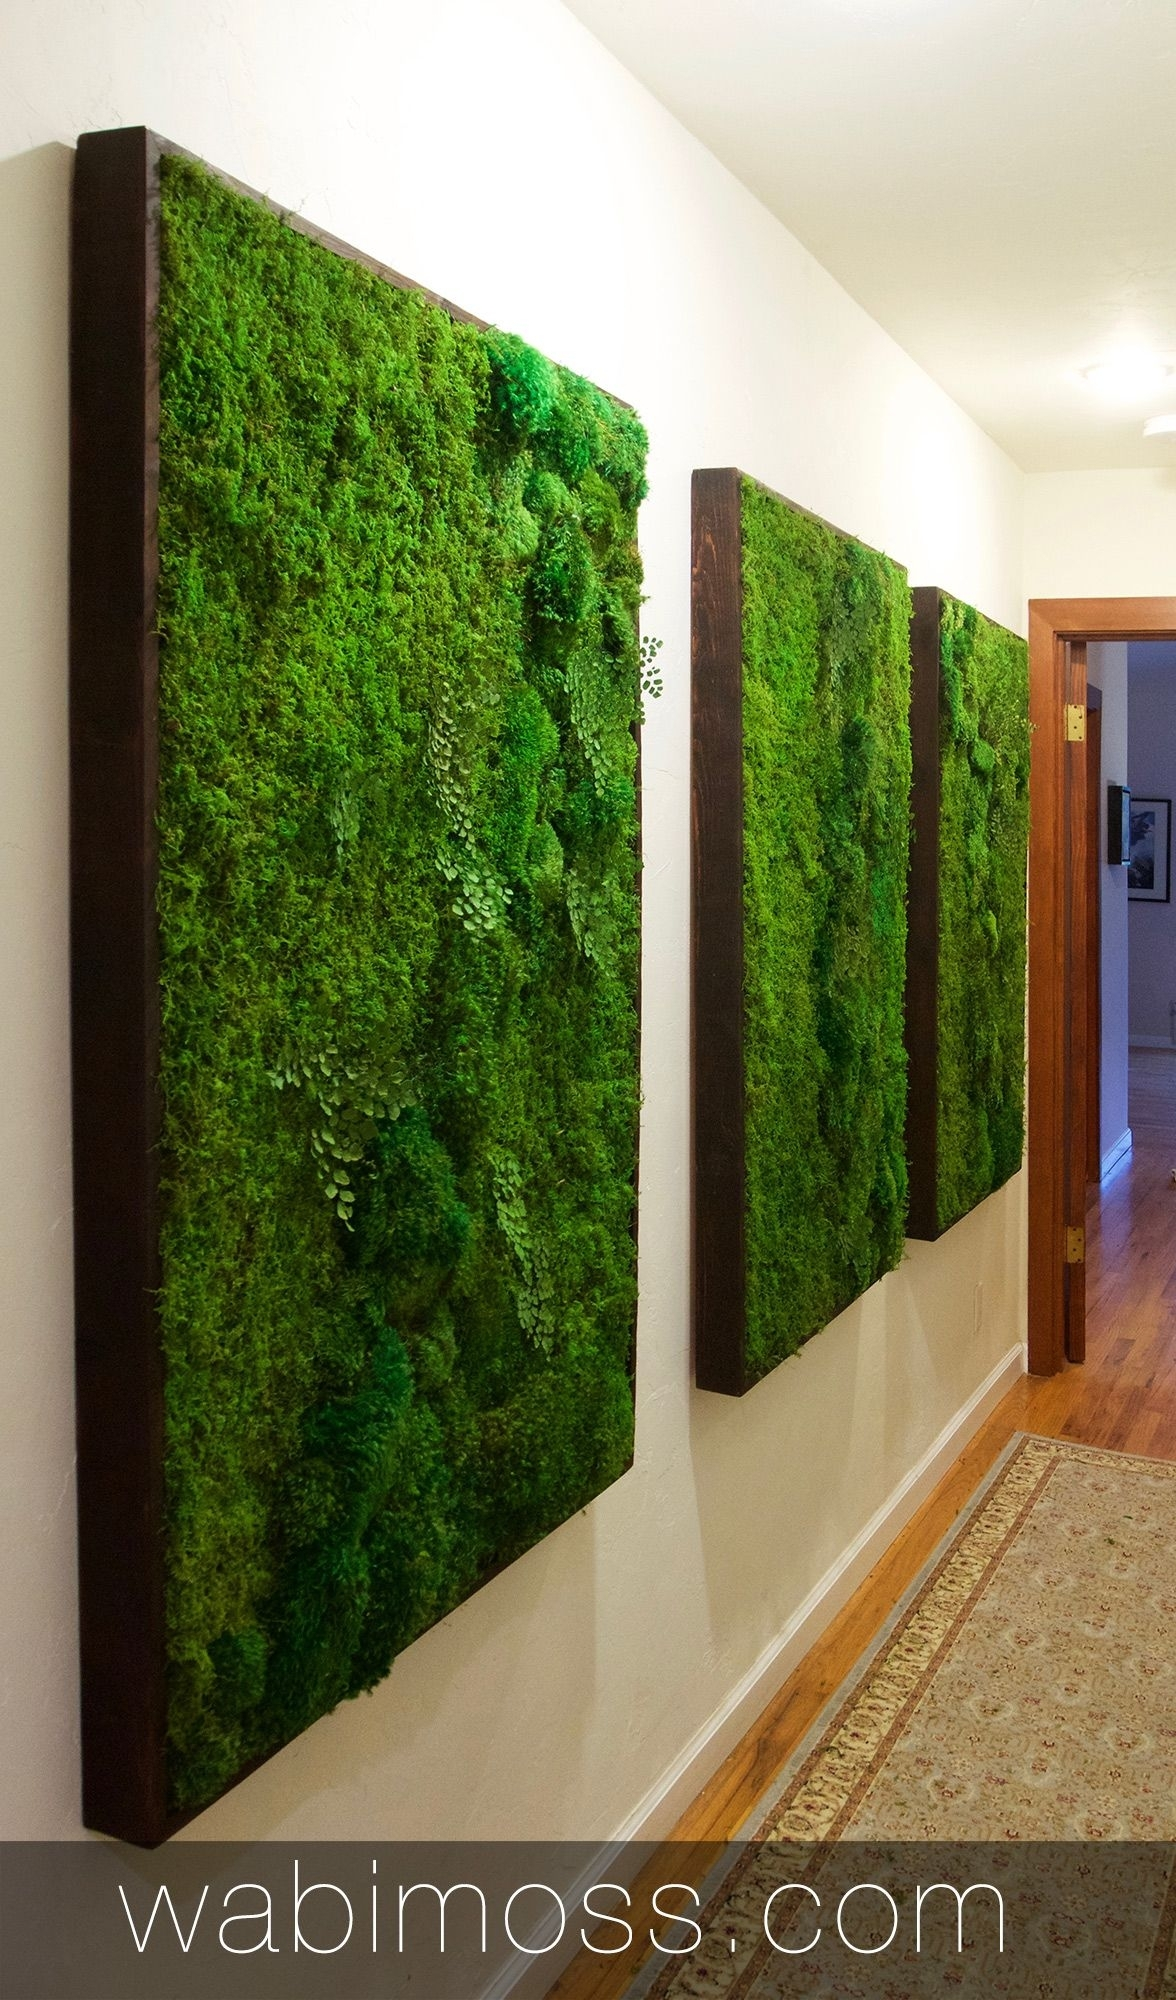 Moss Wall Artwork For Interior Designers | Pinterest | Moss Wall Art Regarding 2017 Moss Wall Art (Gallery 14 of 20)